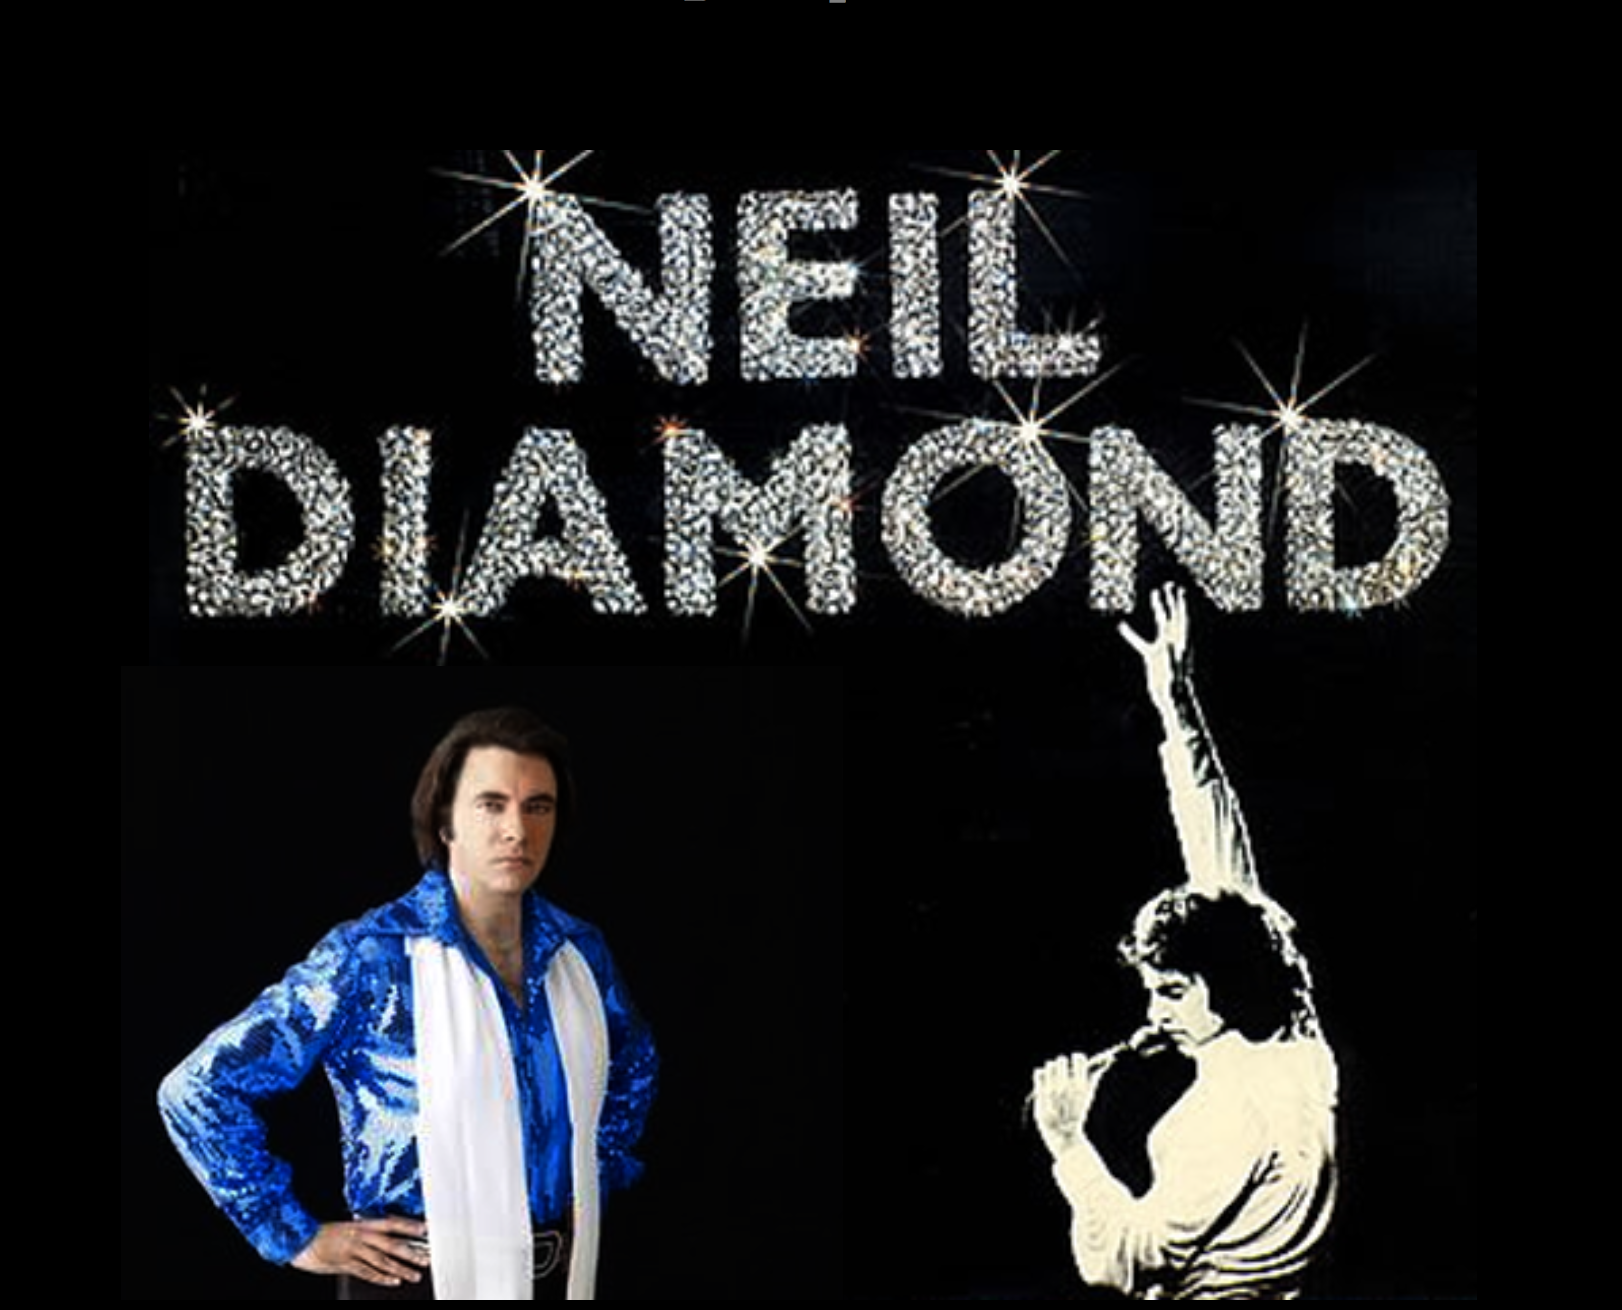 Robert McArthur as Neil Diamond